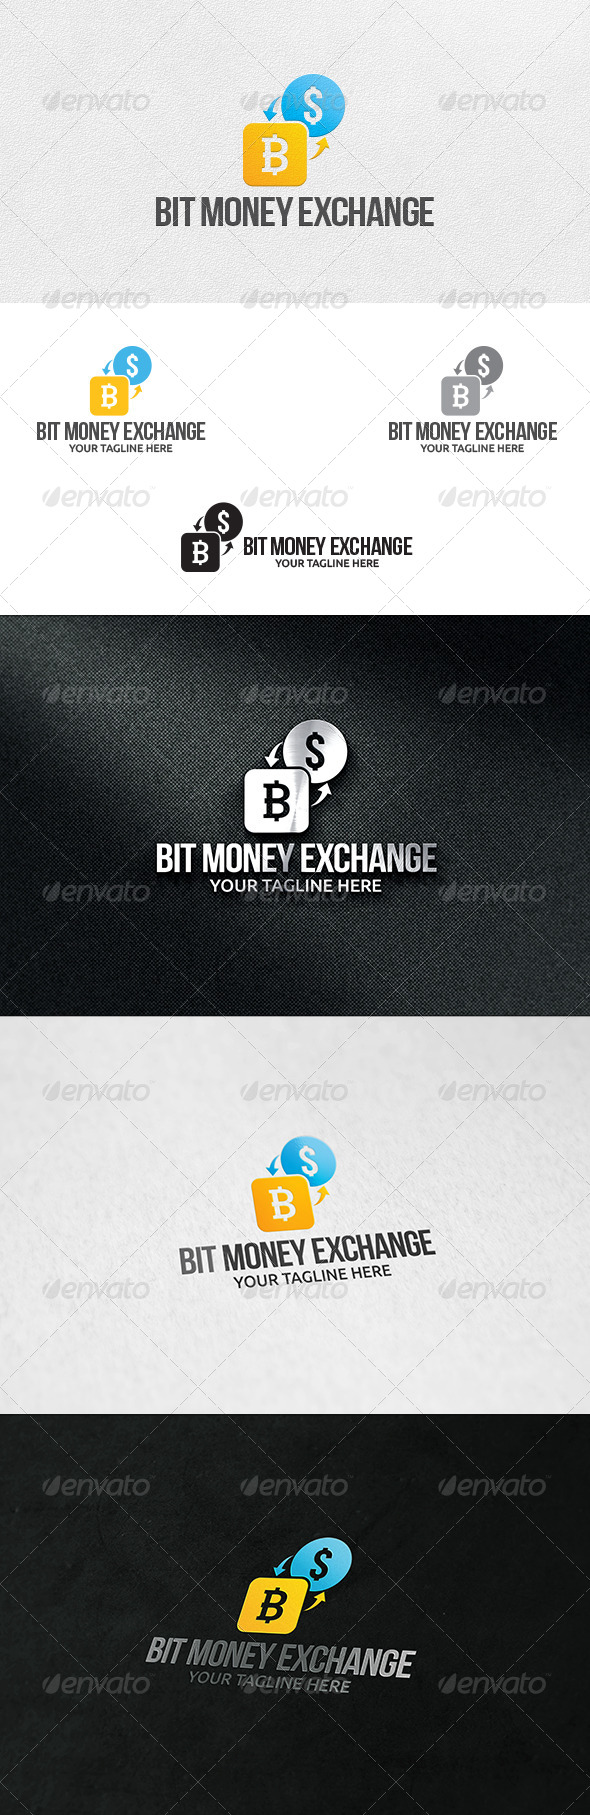 Bit Money Exchange - Logo Template